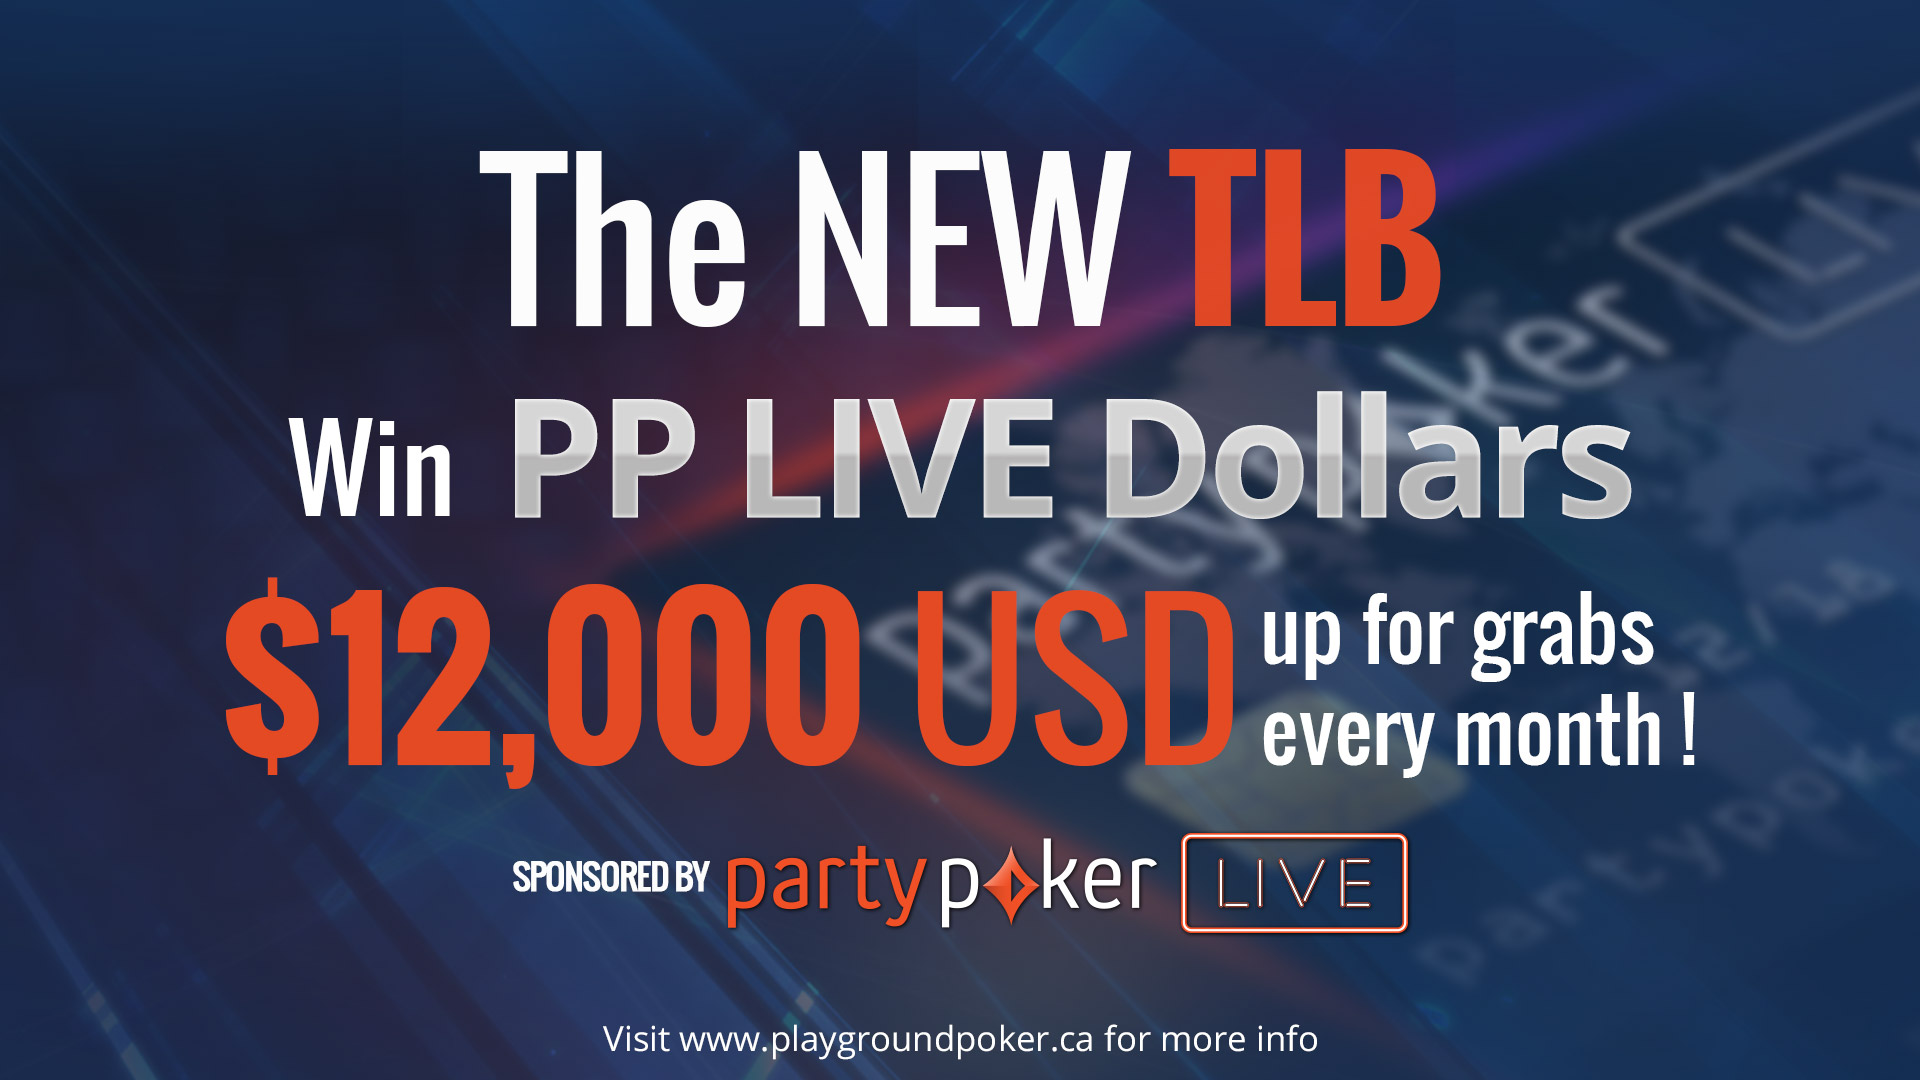 The Playground TLB – now brought to you by partypoker LIVE